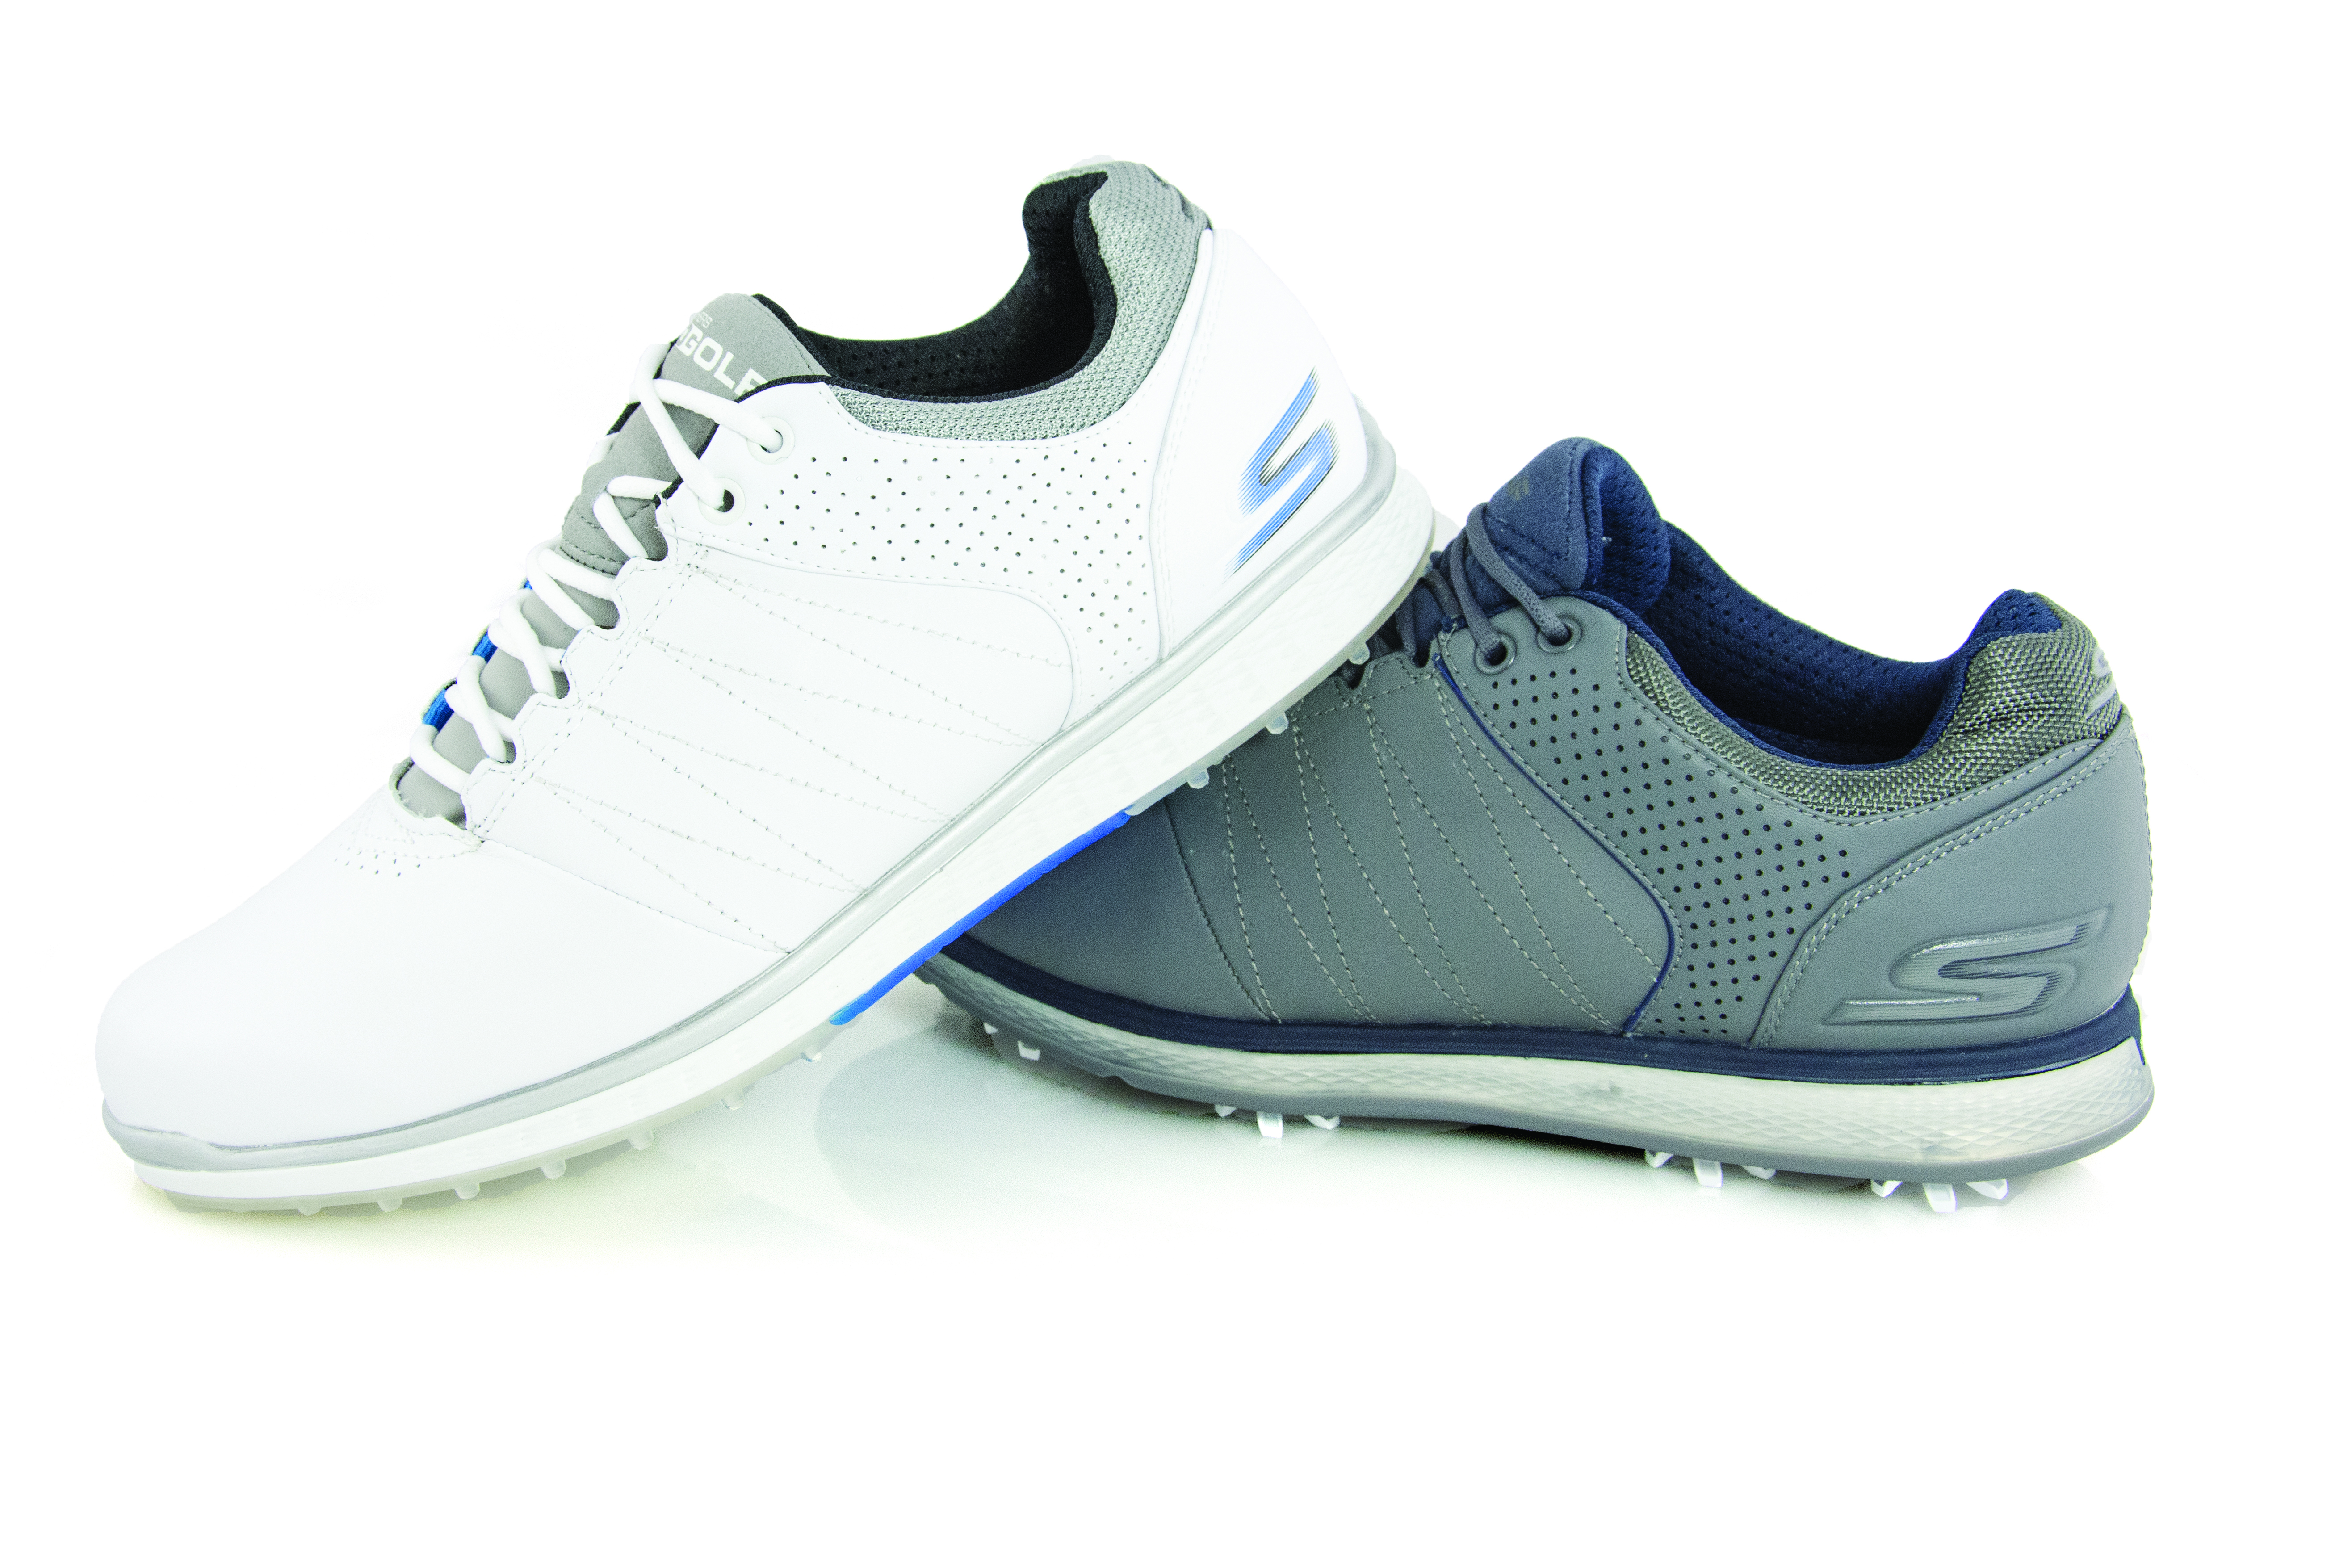 390674148879 Skechers launches Go Golf 2017 shoes